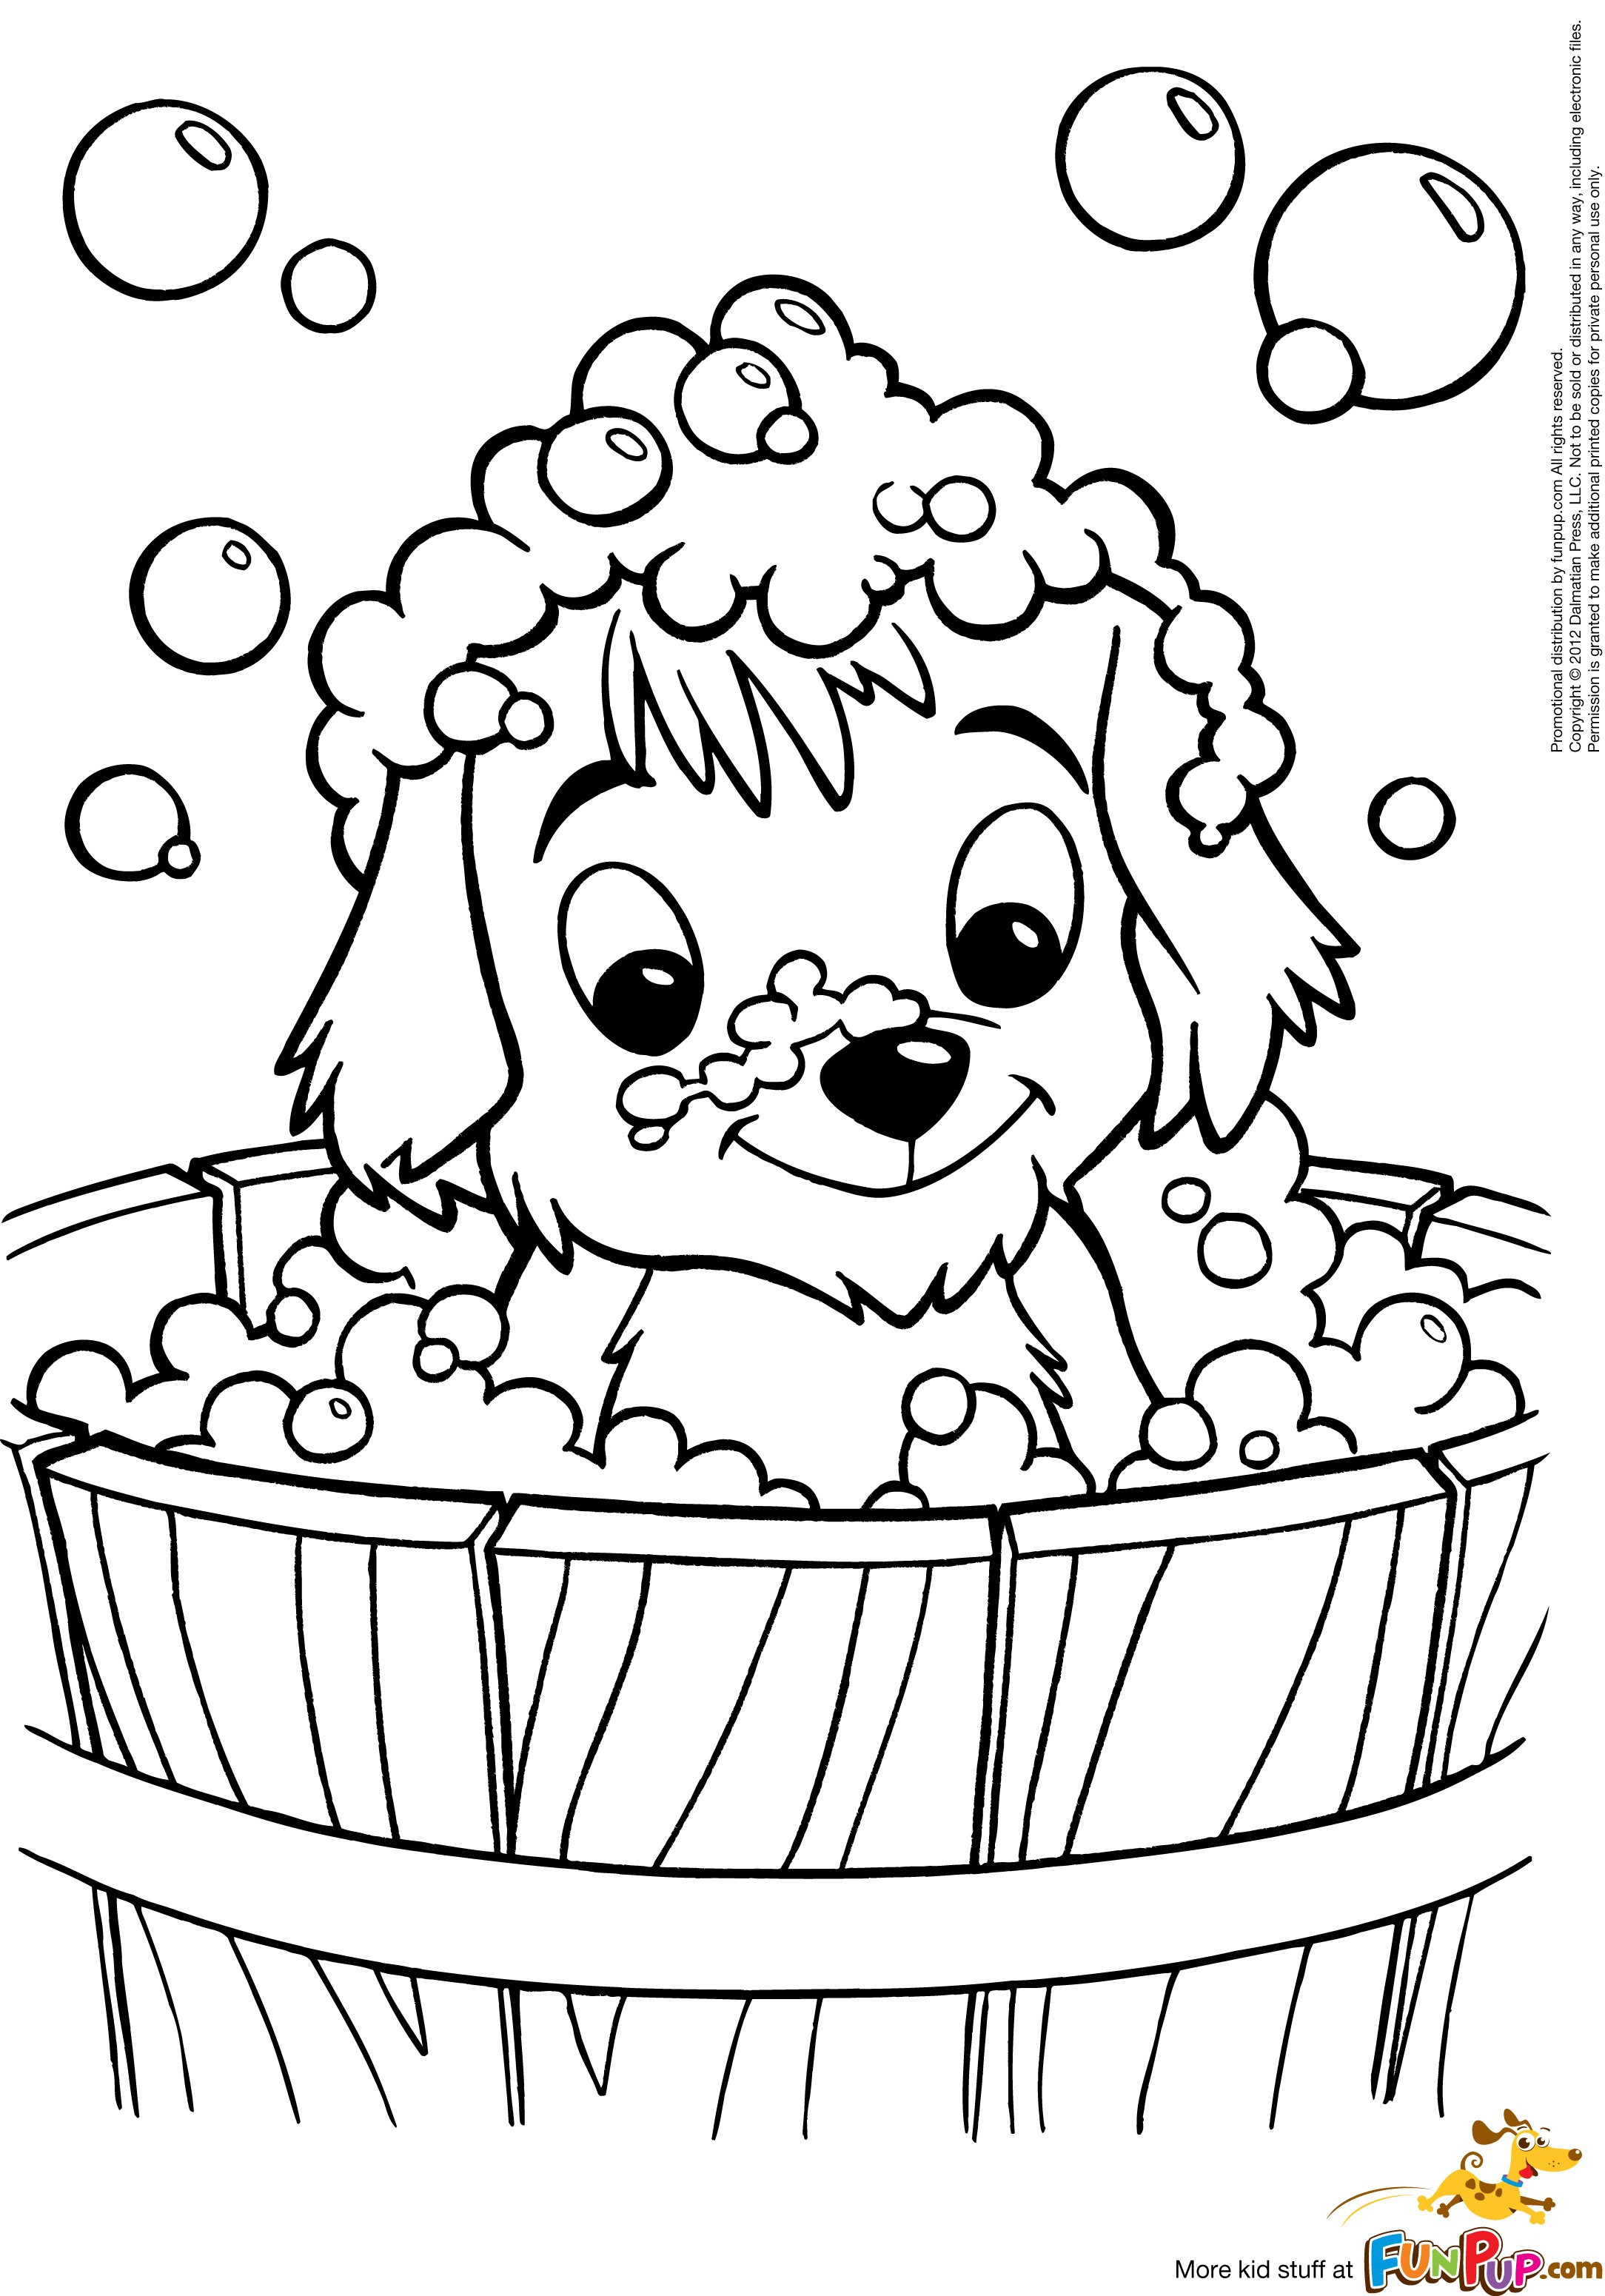 printable cute puppy coloring pages sad puppy coloring pages at getcoloringscom free printable pages puppy coloring cute